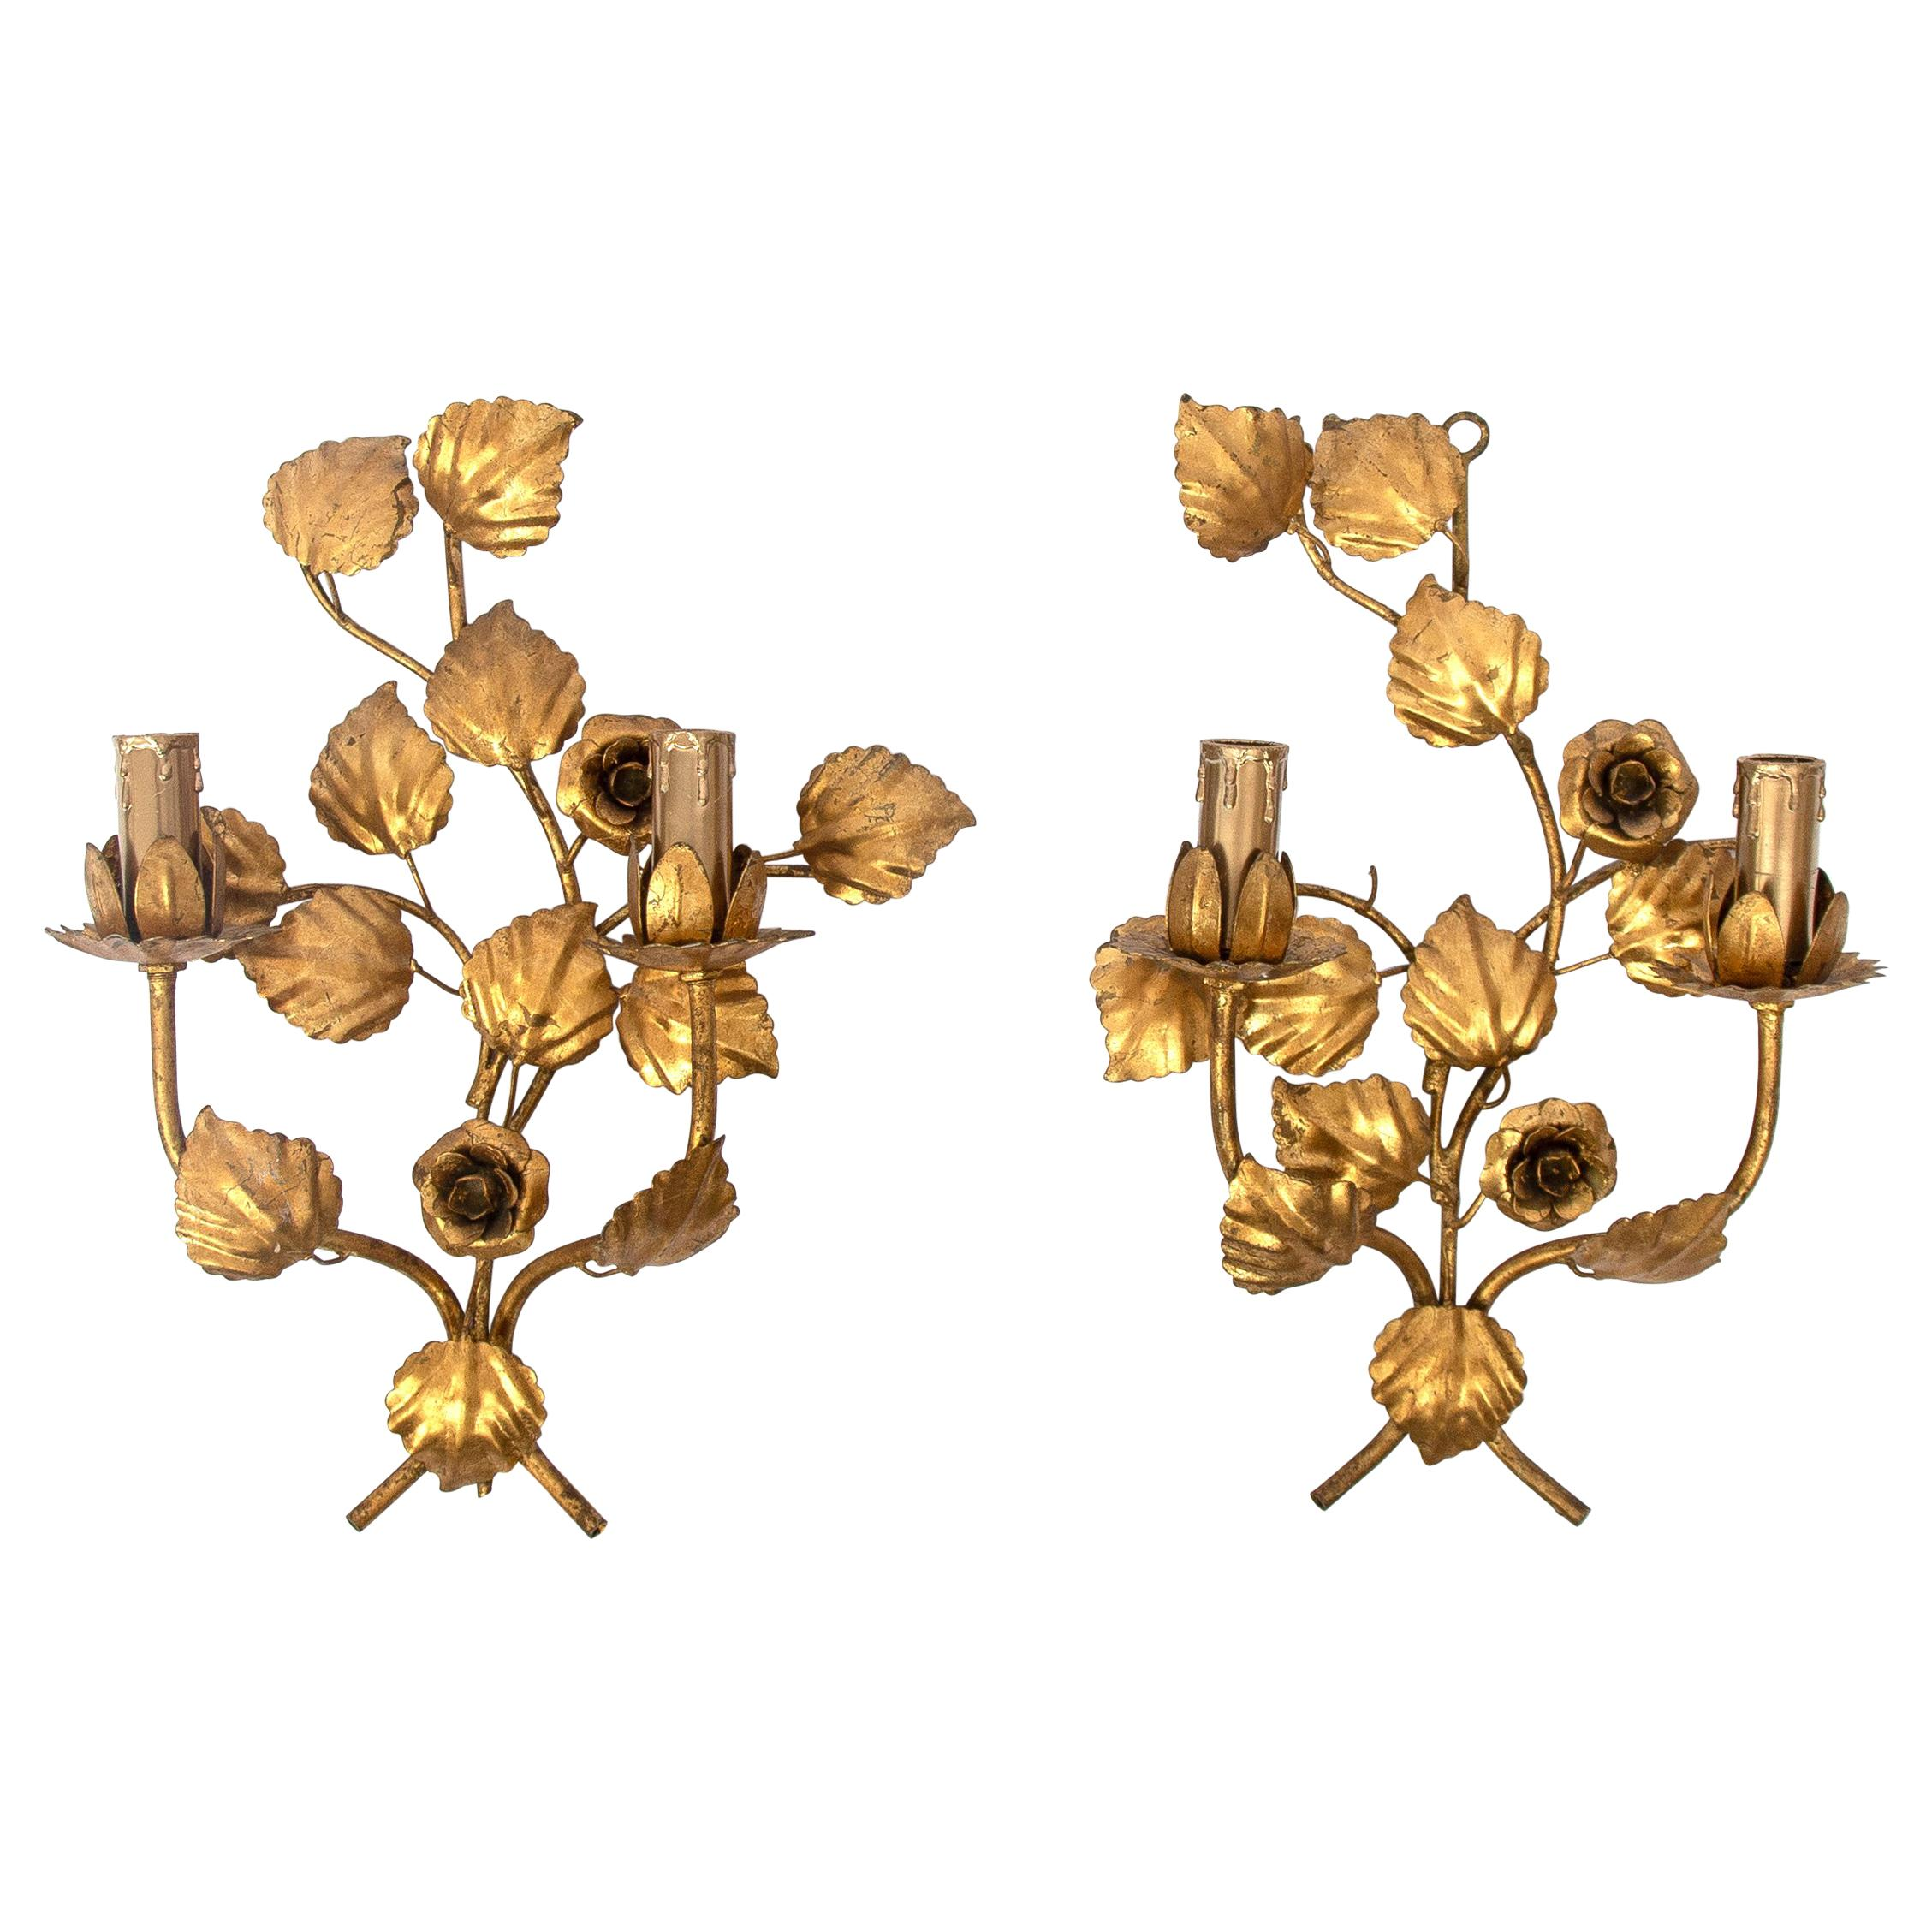 Pair of Hollywood Regency Wall Lamps Metal Gold Leaf by Hans Kögl, 1970s